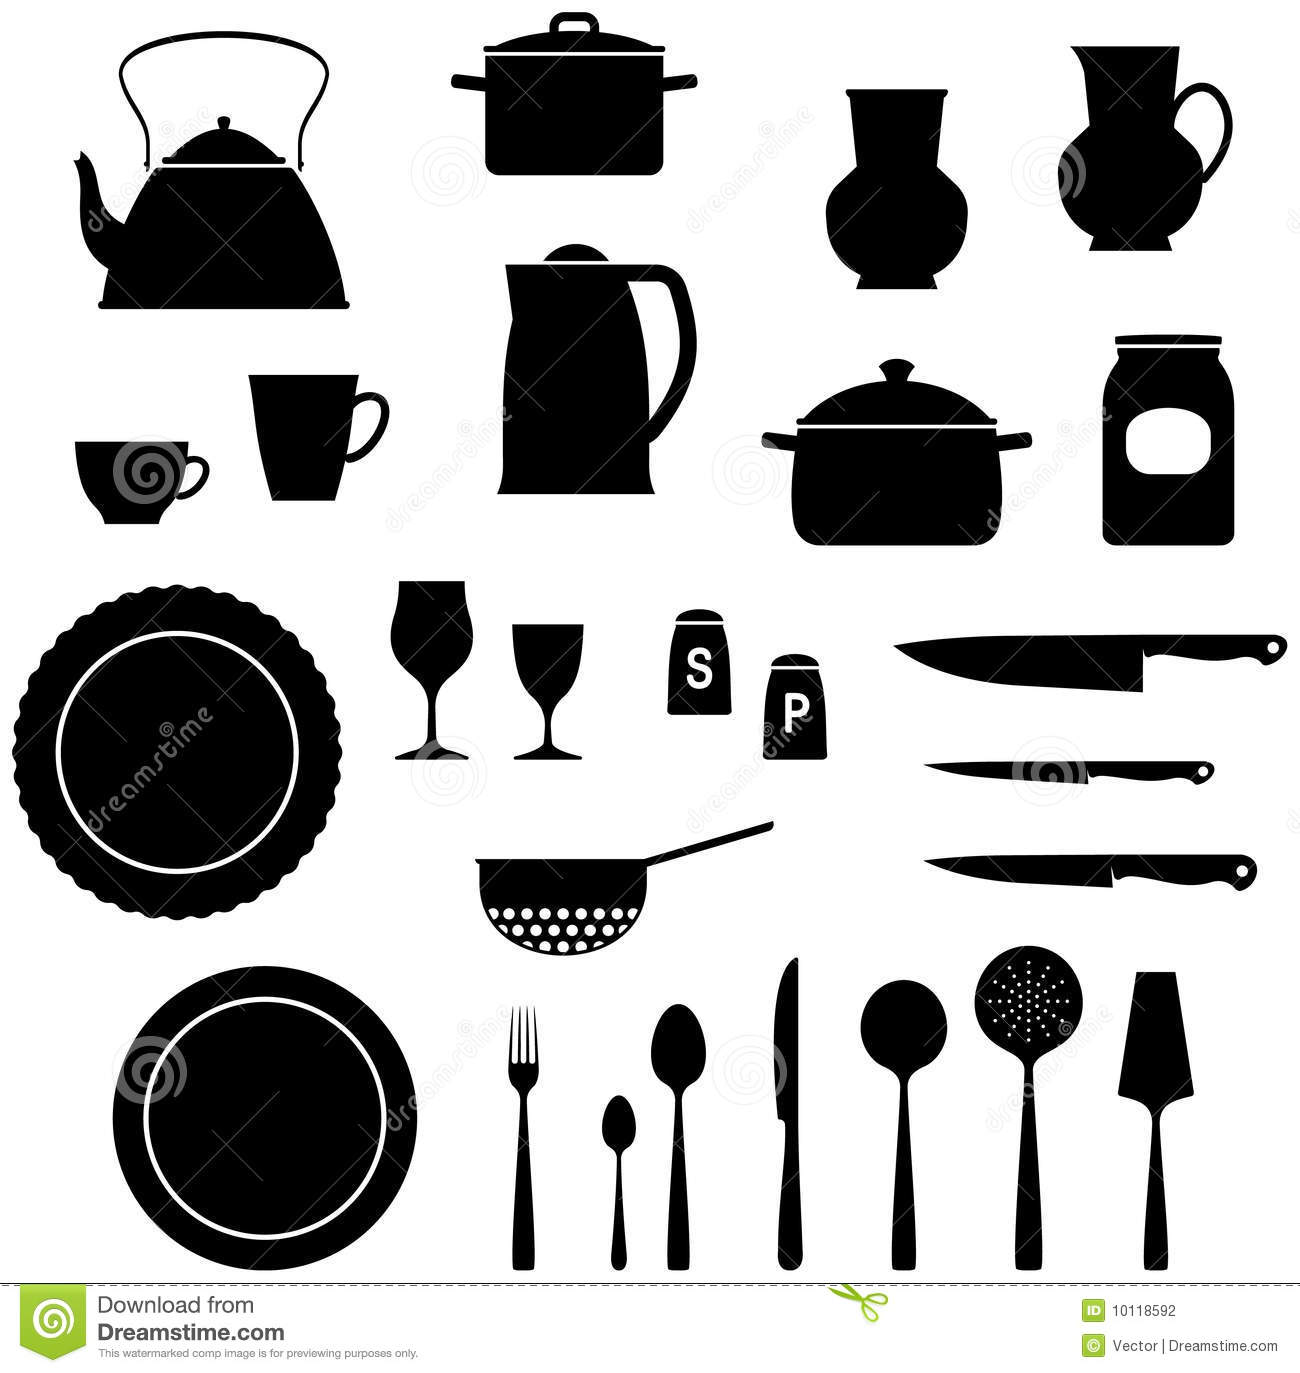 Kitchen appliances clipart - Kitchen Items Vector Illustration Stock Photography Image